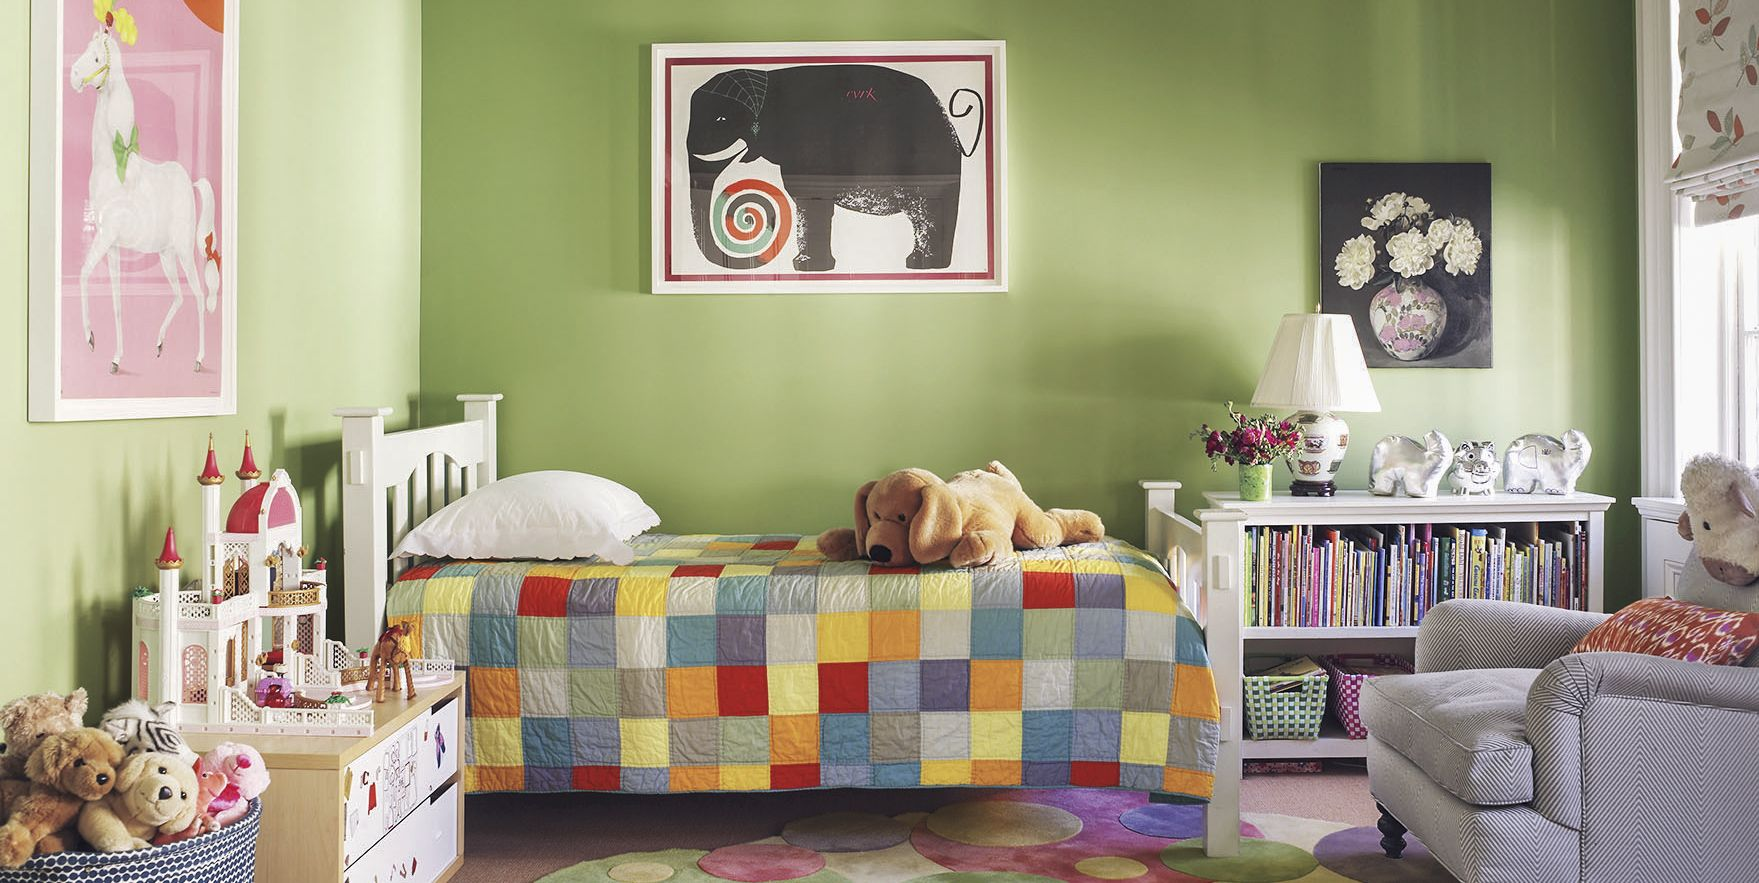 18 Creative And Chic Kids' Room Decorating Ideas